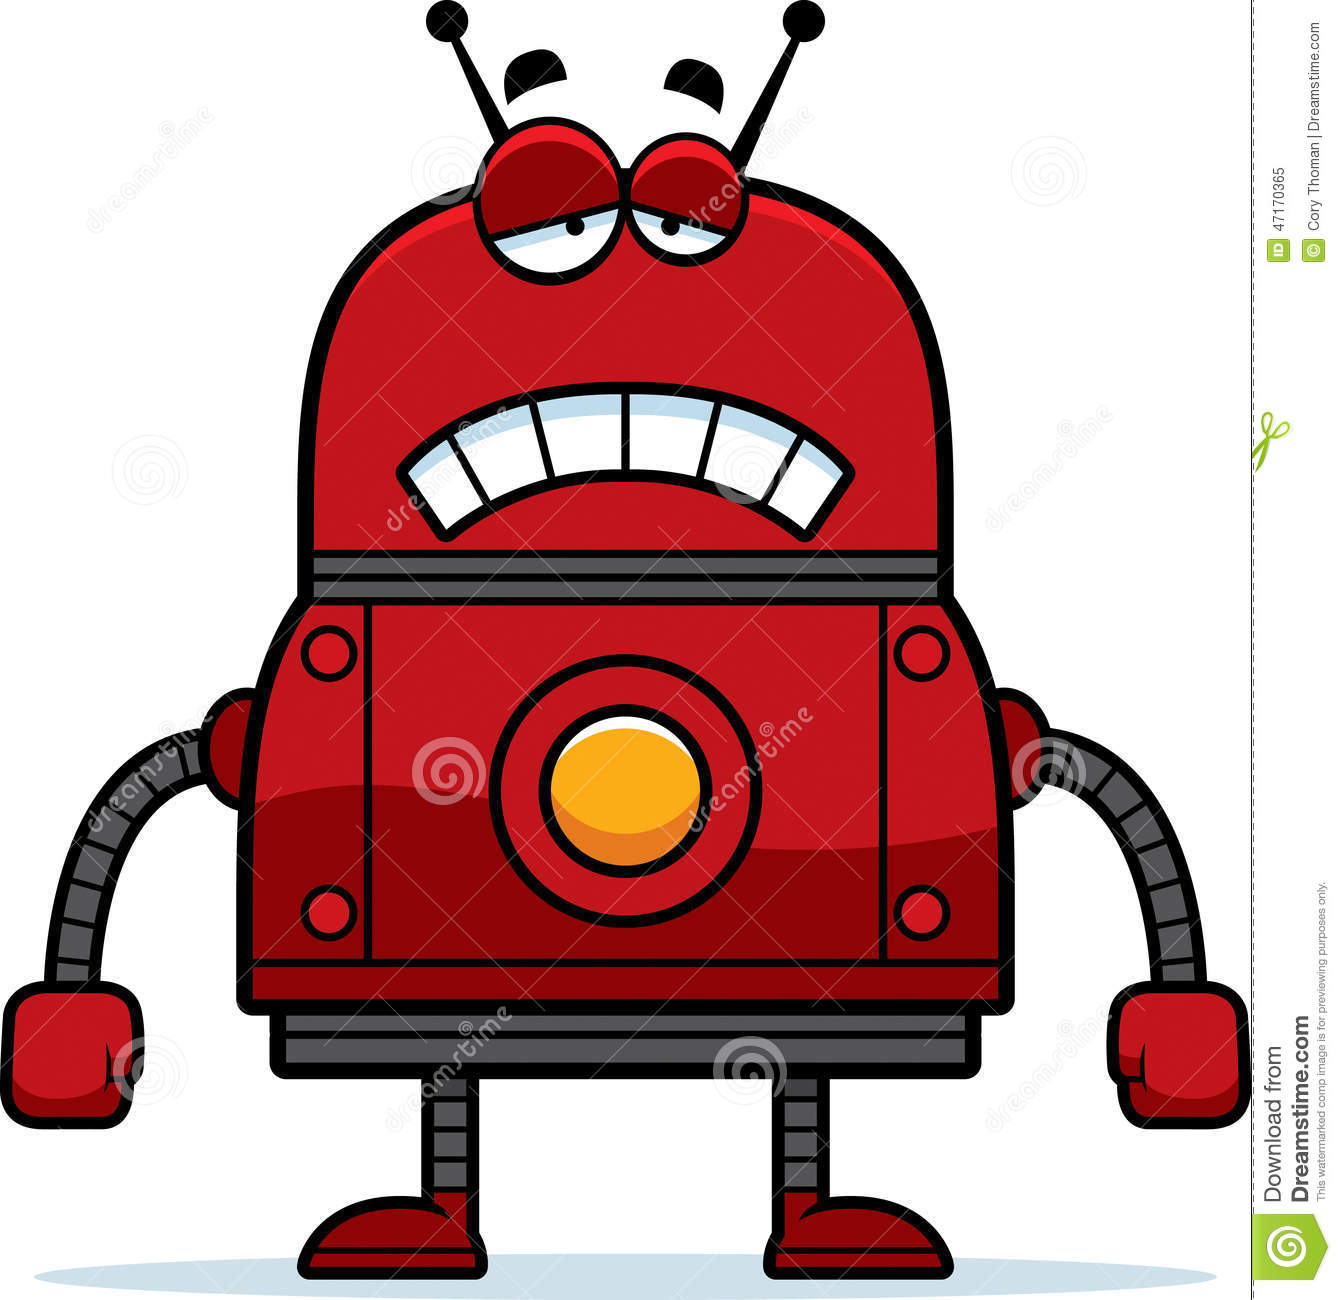 Sad Red Robot Stock Vector Illustration Of Cartoon